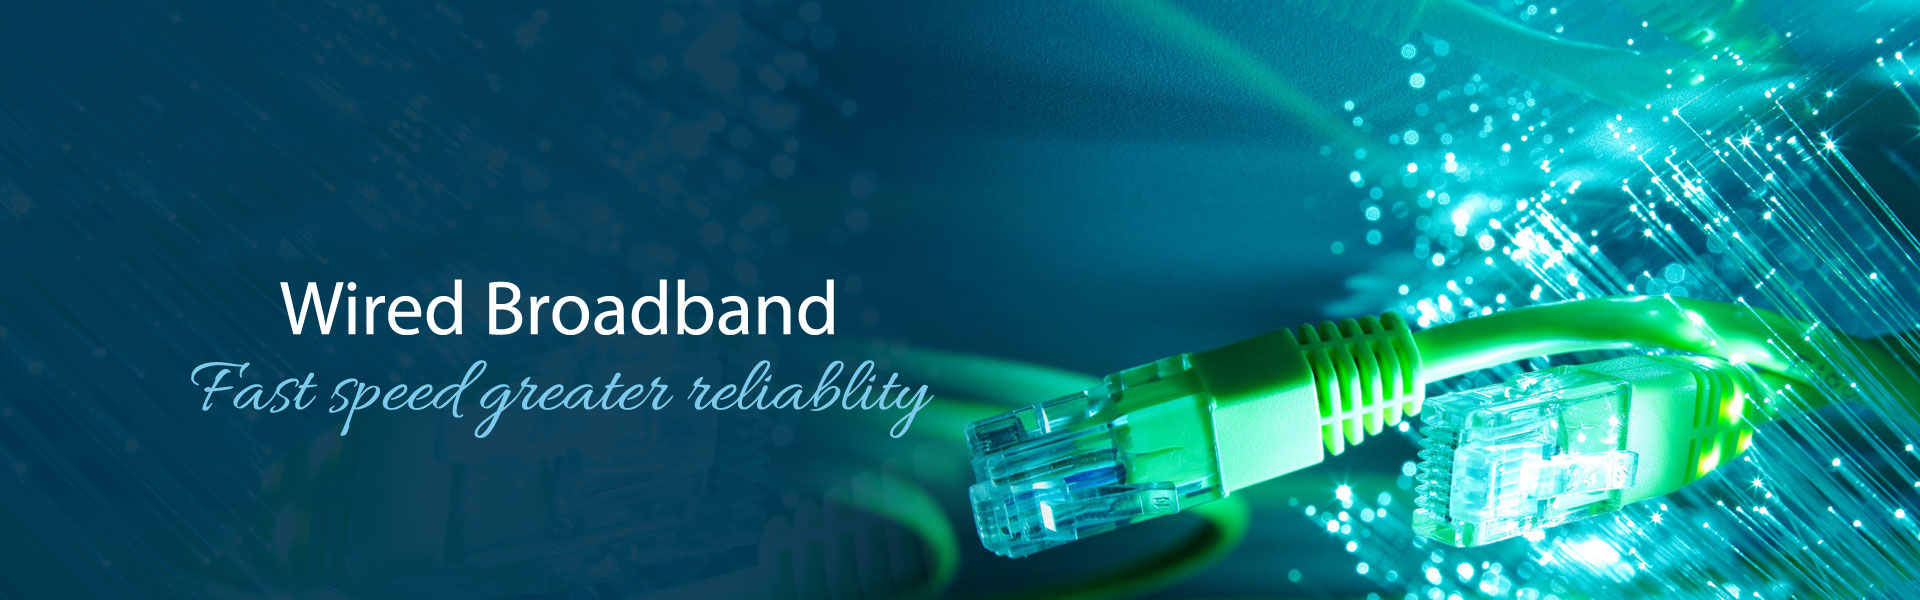 wired broadband services